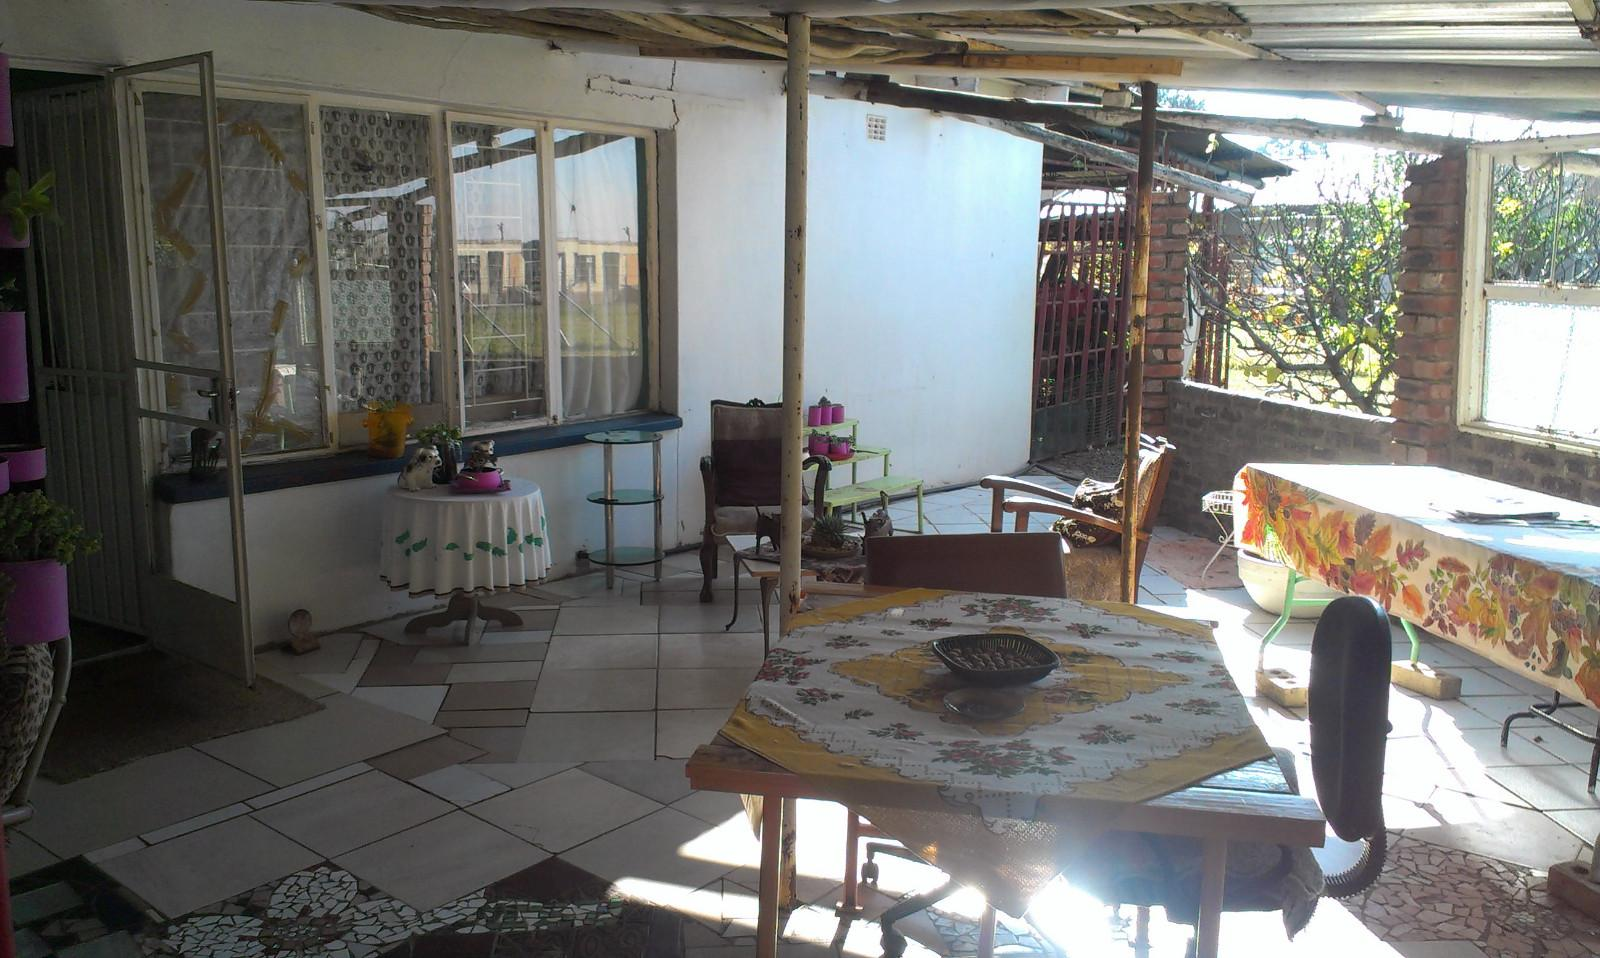 Vyfhoek property for sale. Ref No: 13350093. Picture no 18